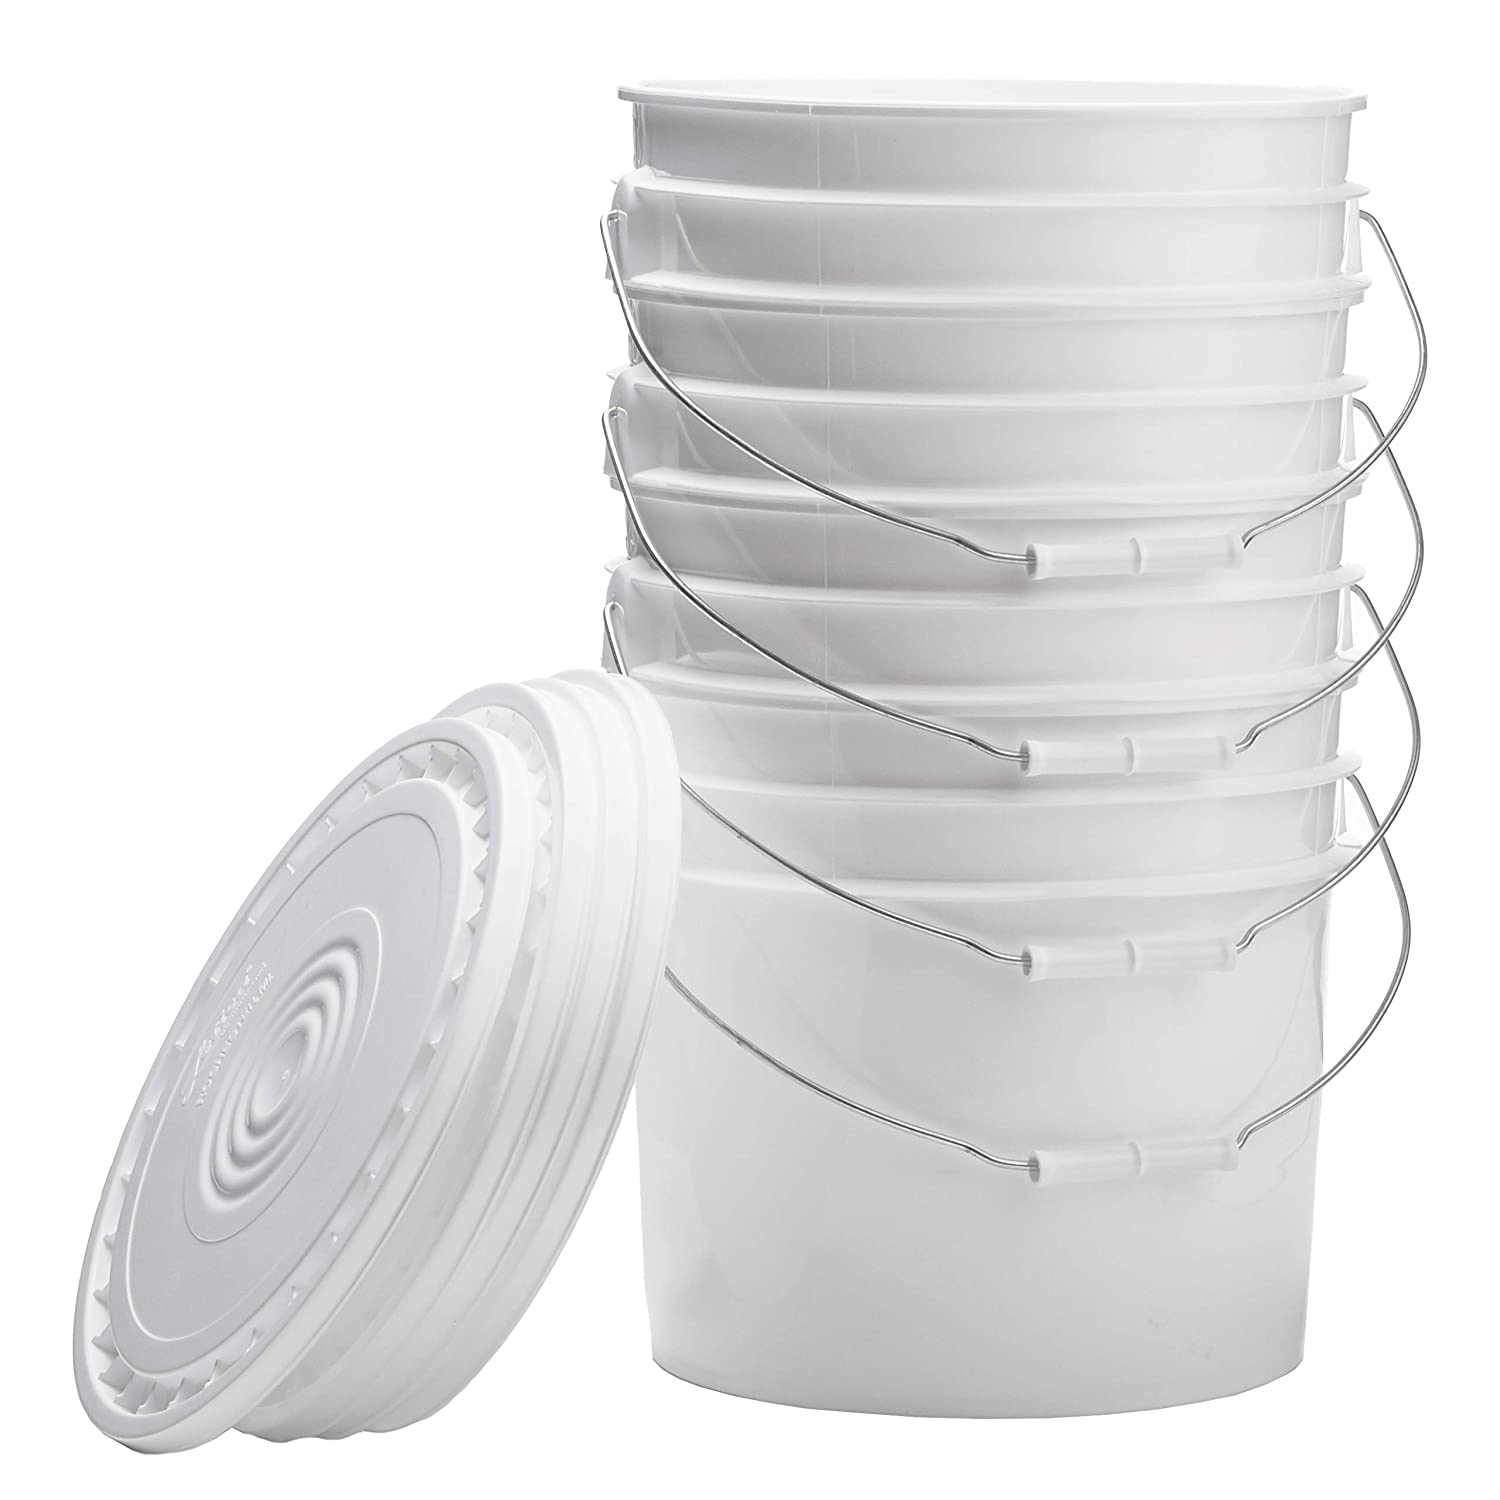 Hudson Exchange Premium 3.5 Gallon Cheap sale 2021new shipping free shipping Bucket Whit Lid Pack 4 with